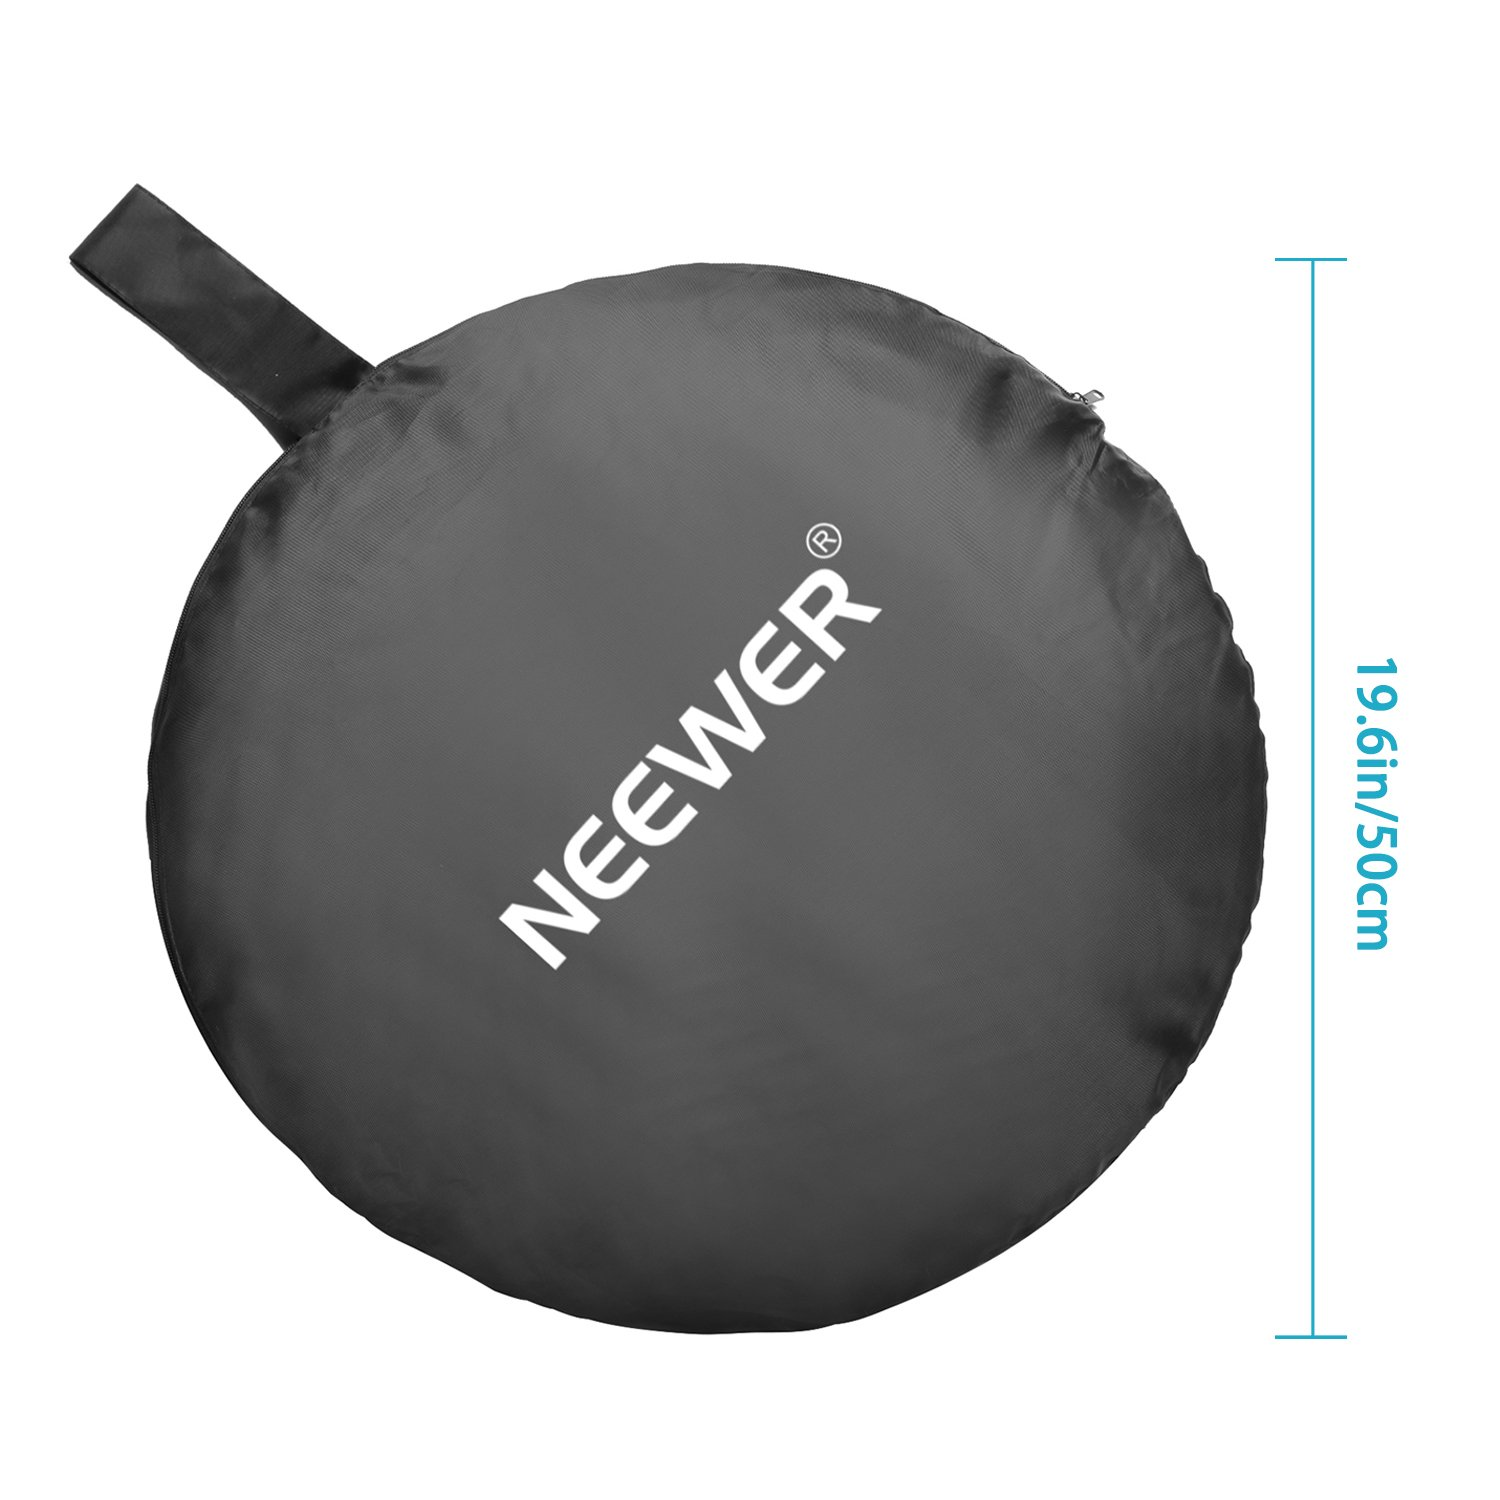 Neewer Photography Studio Lighting Reflector Pop-out Foldable Soft Diffuser Disc Panel with Carrying Case for Studio and Outdoor Portrait, Product Photography,Video Shooting (39.4 x 59 inches) by Neewer (Image #4)